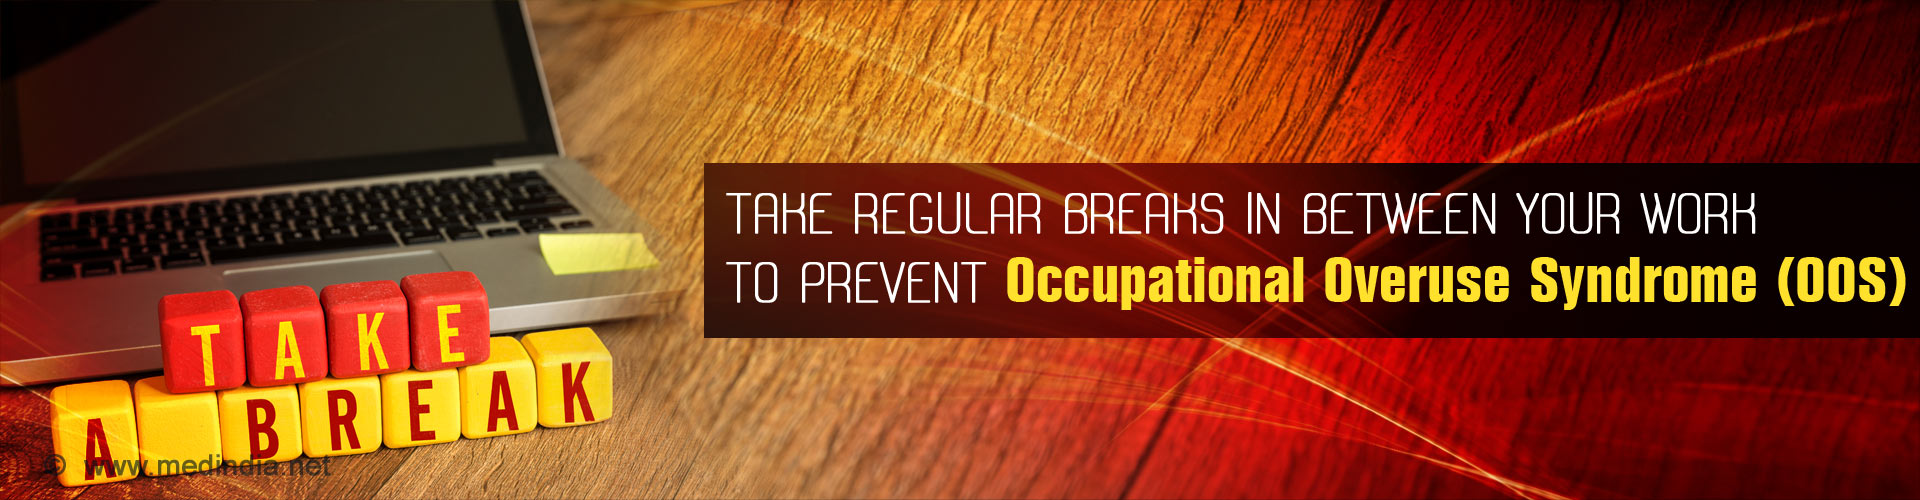 Take regular breaks in between your work to prevent Occupational Overuse Syndrome (OOS)